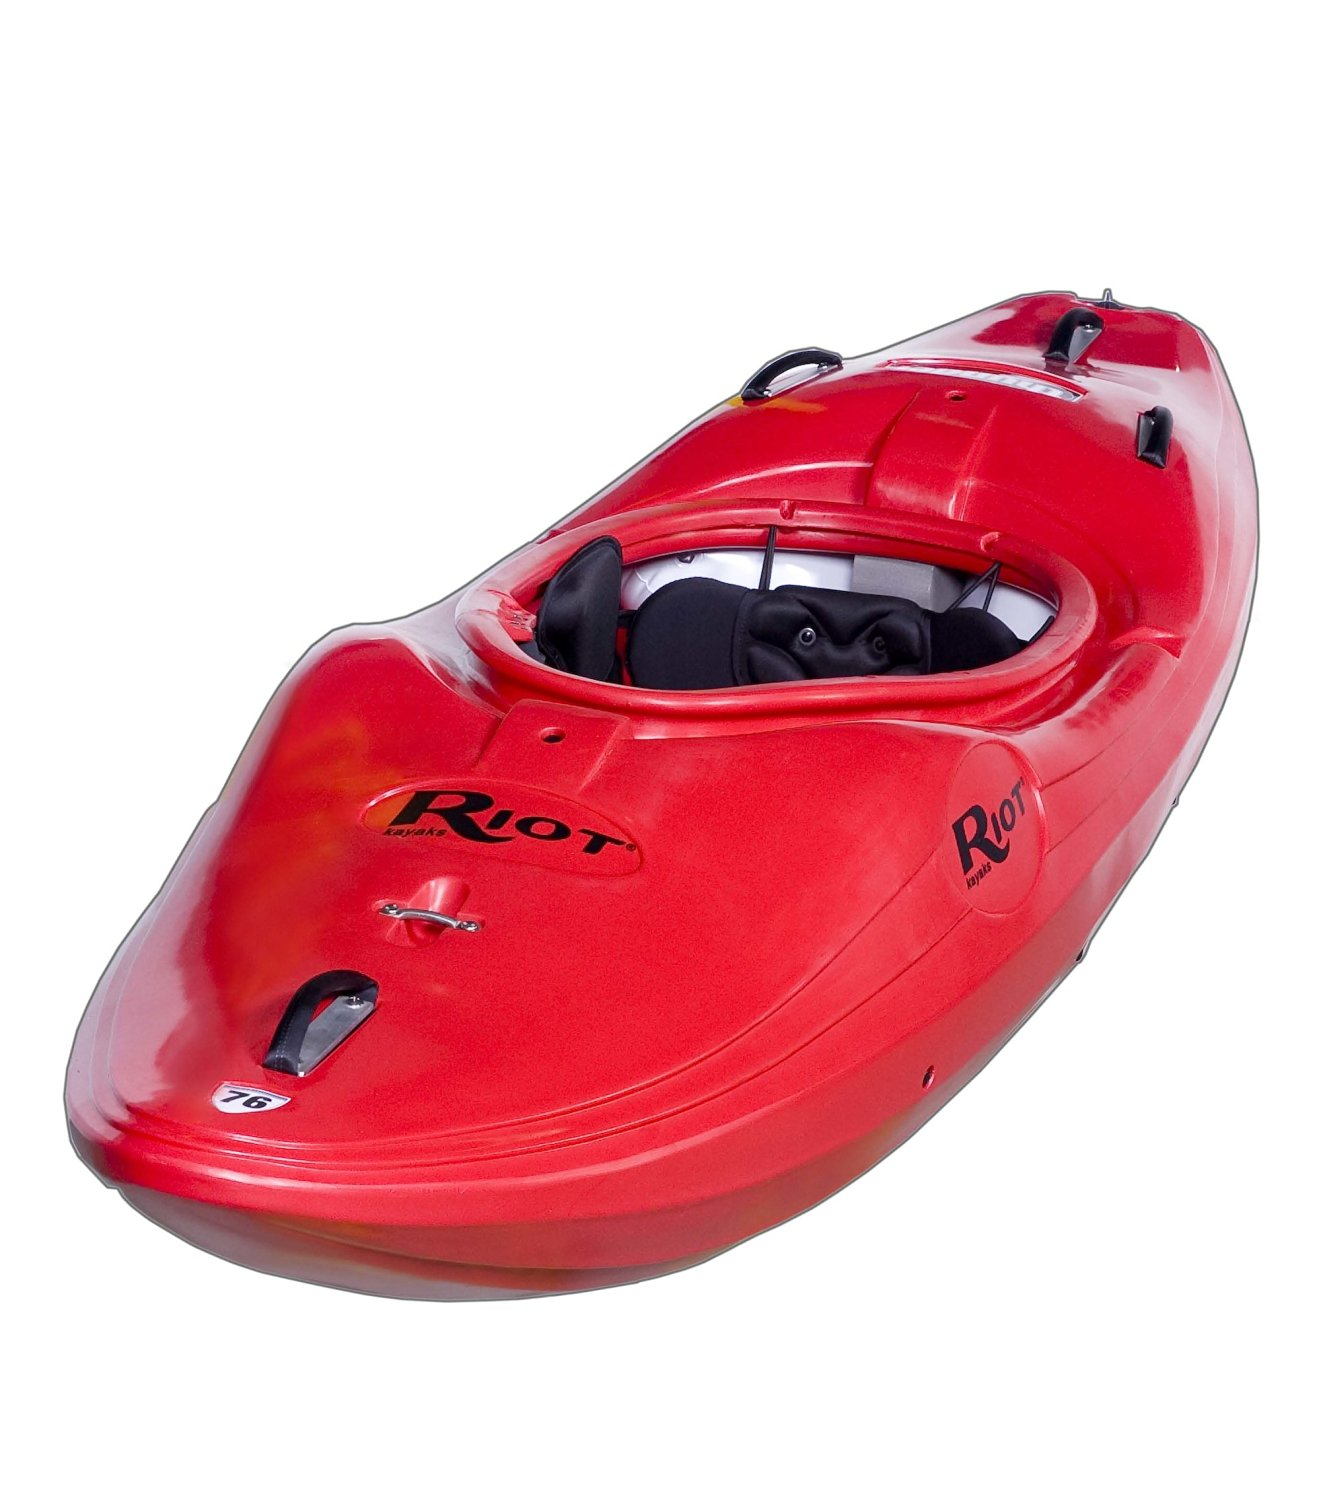 Whitewater Kayaks For Sale >> Cheap Whitewater Kayaks For Sale Find Whitewater Kayaks For Sale